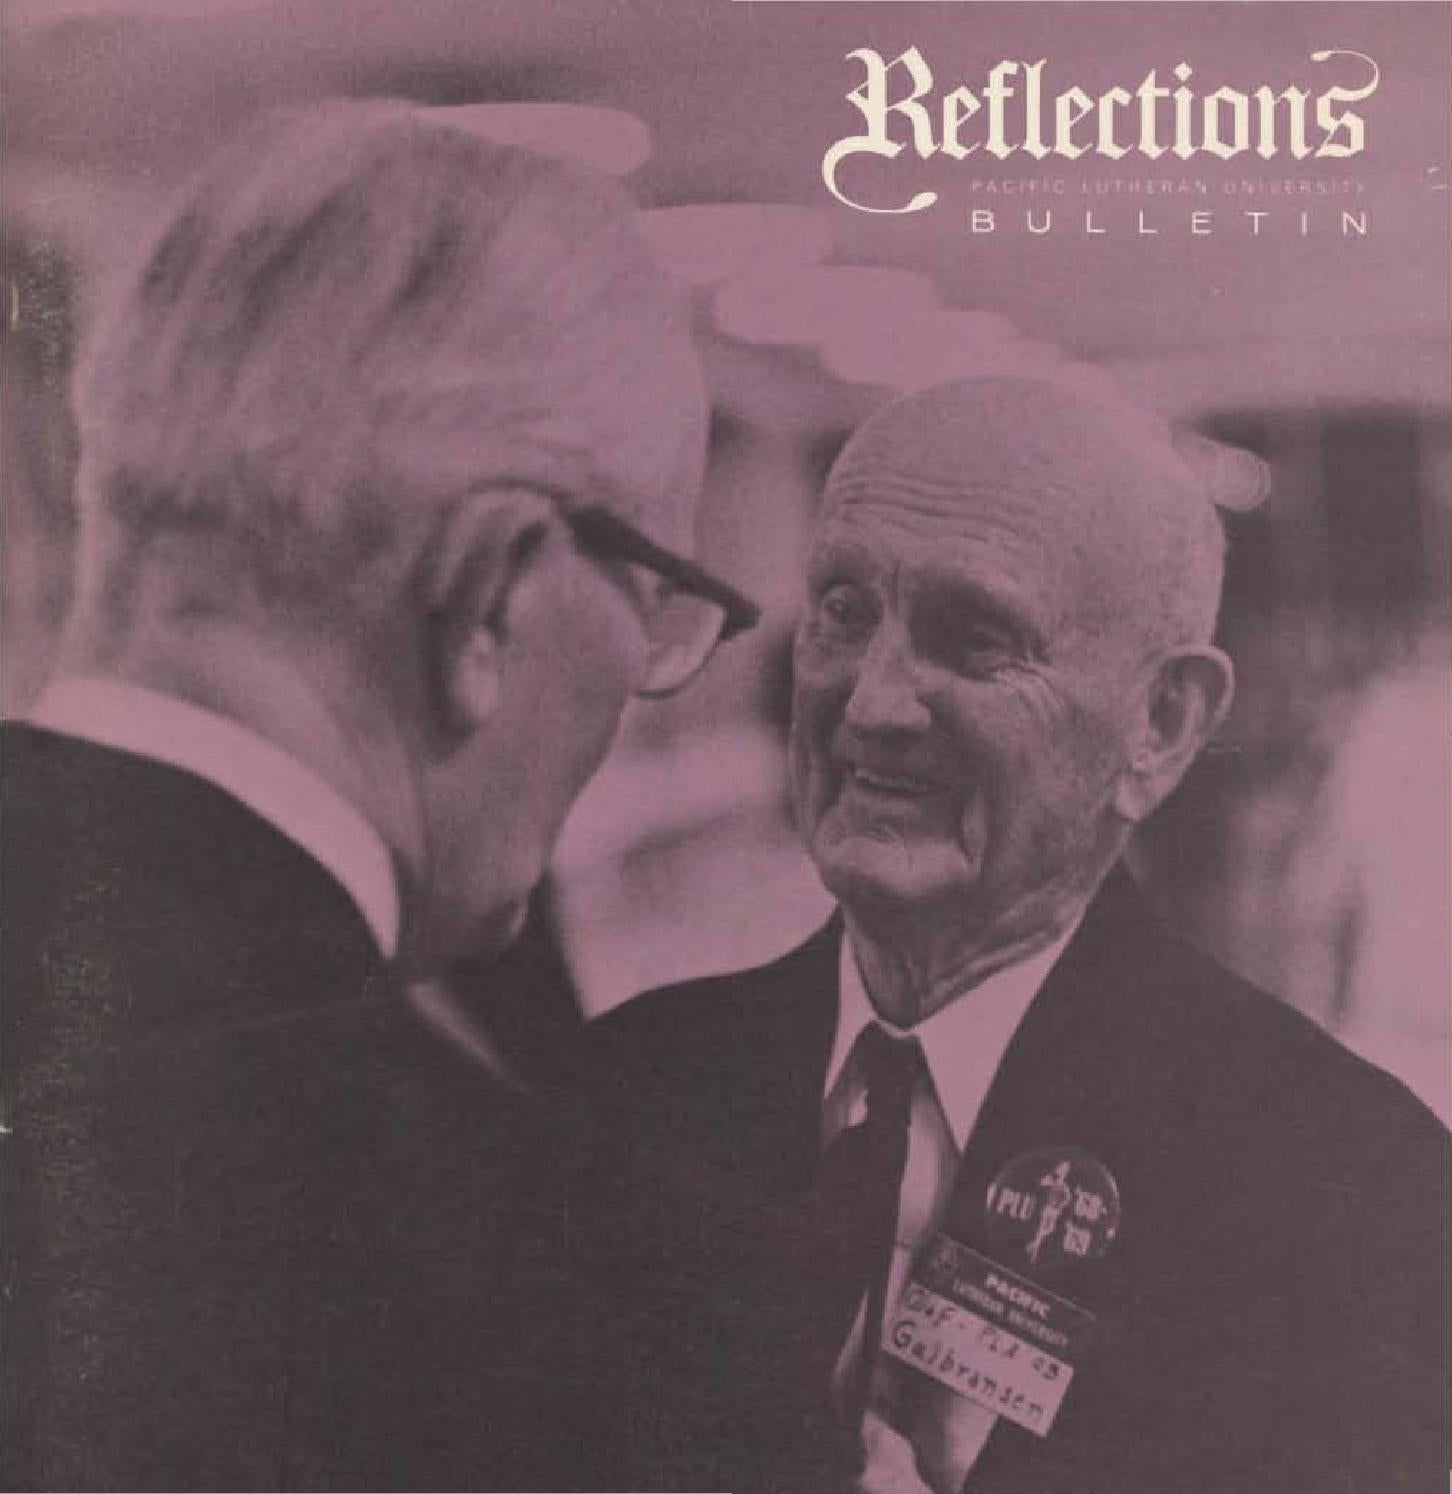 Reflections 1969 january by Pacific Lutheran